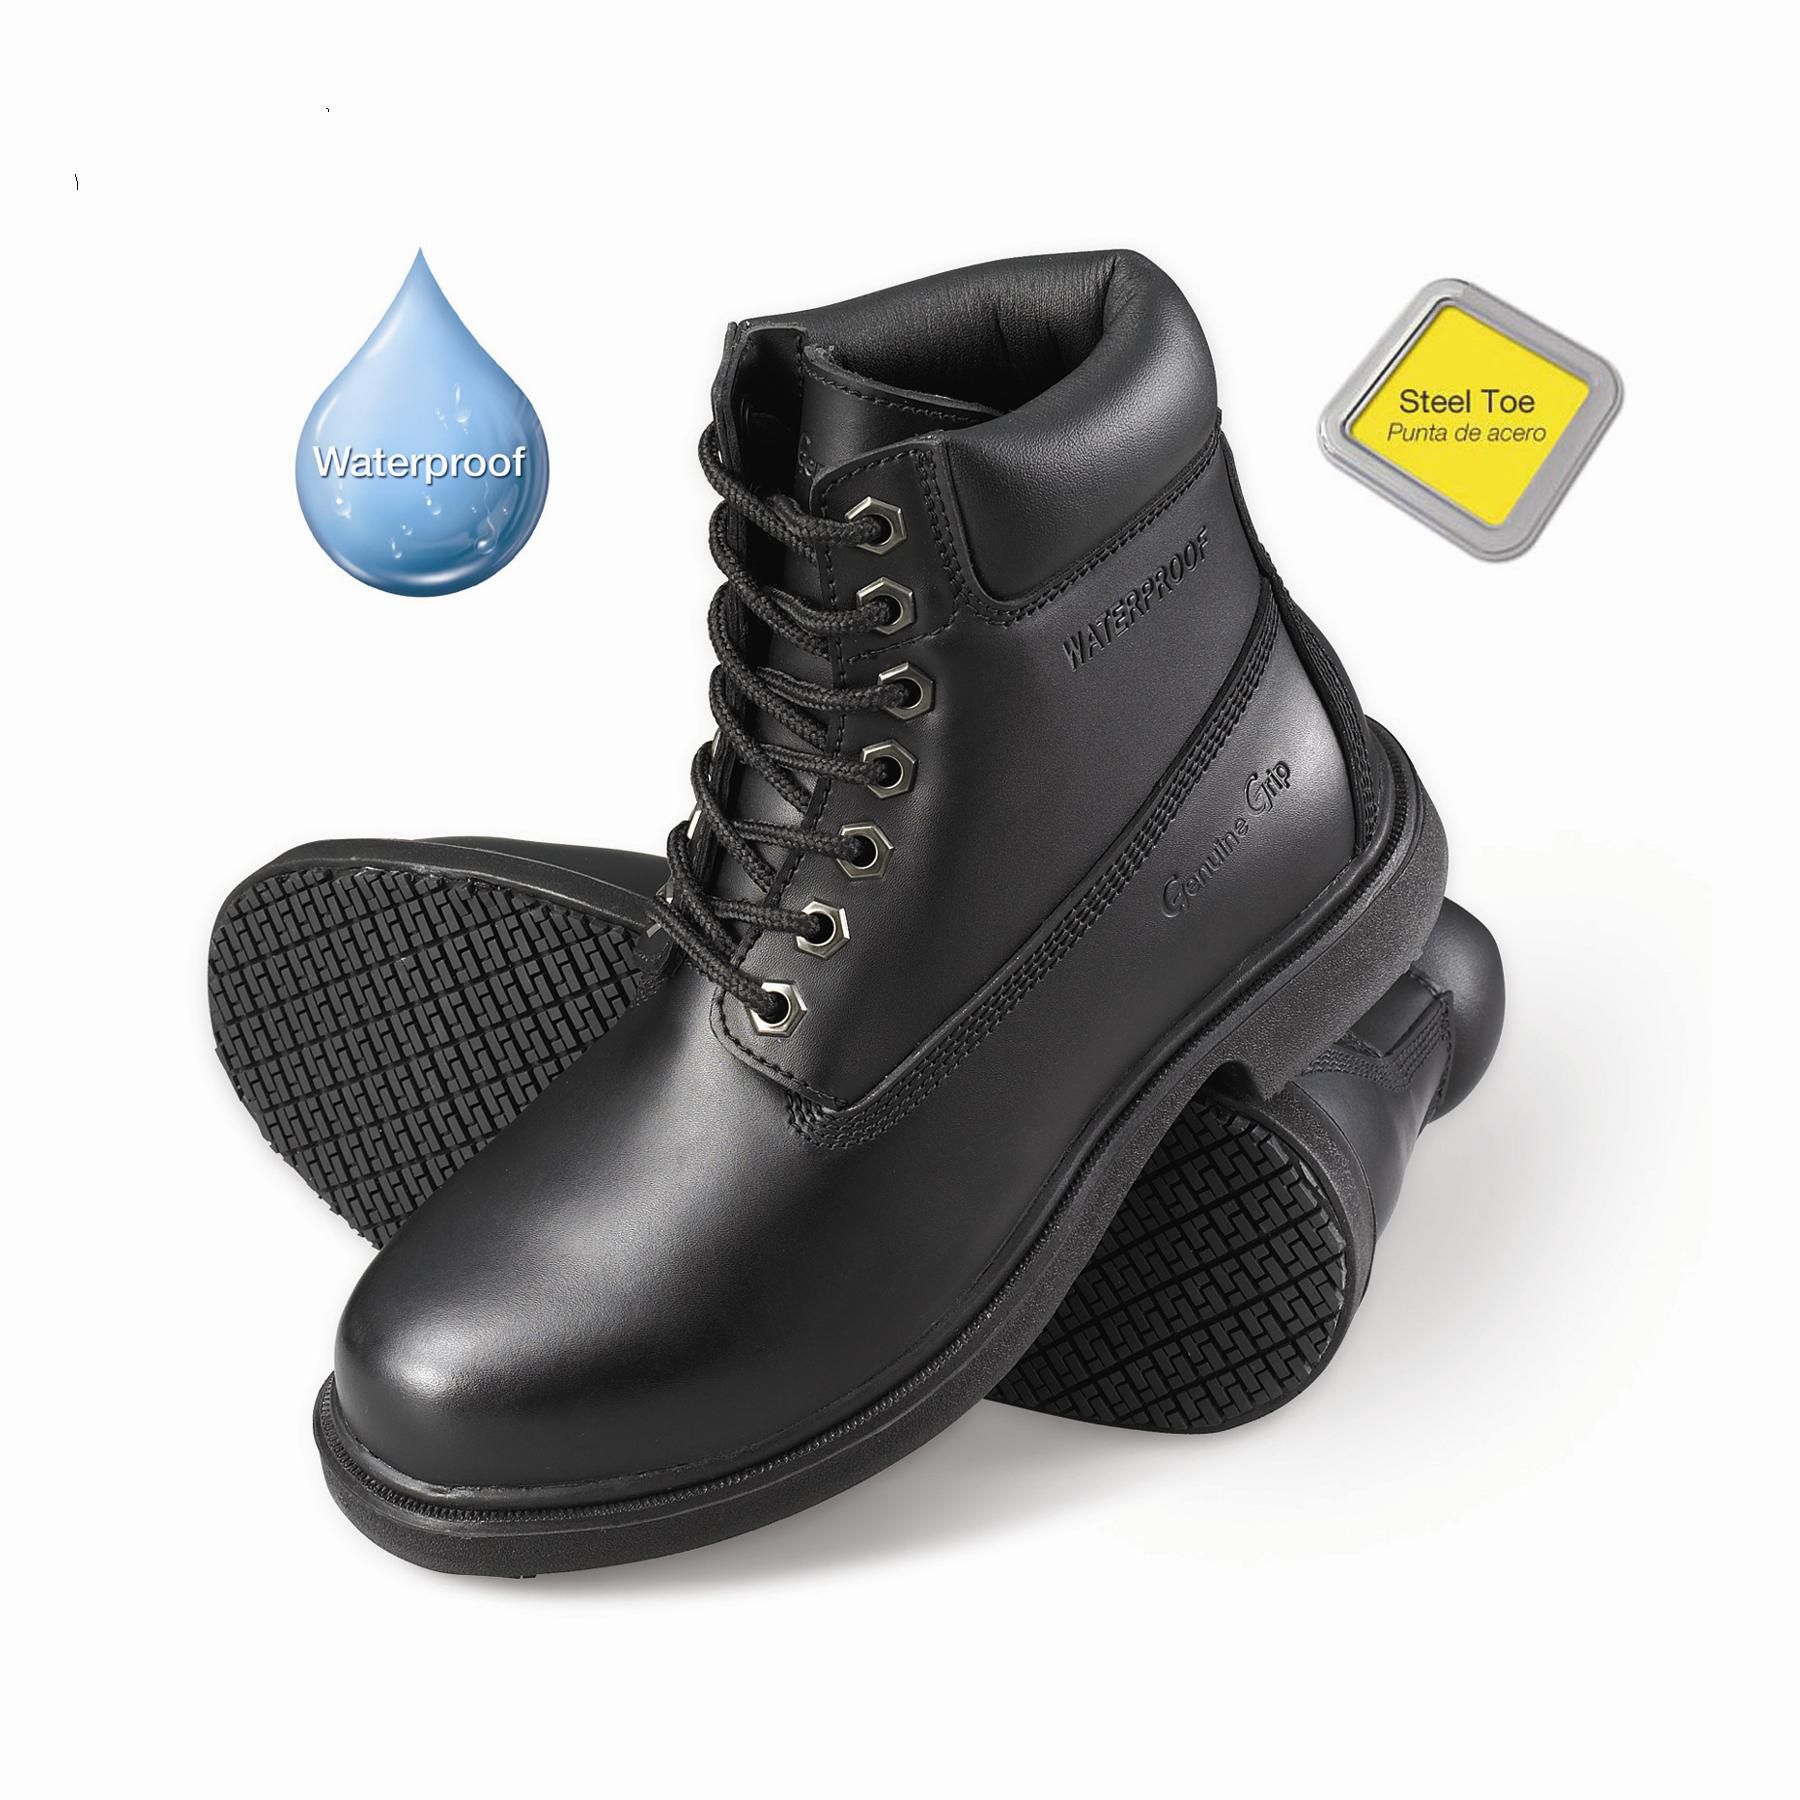 Genuine Grip Men's Slip-Resistant Waterproof Steel Toe Work Boots #7161 Black